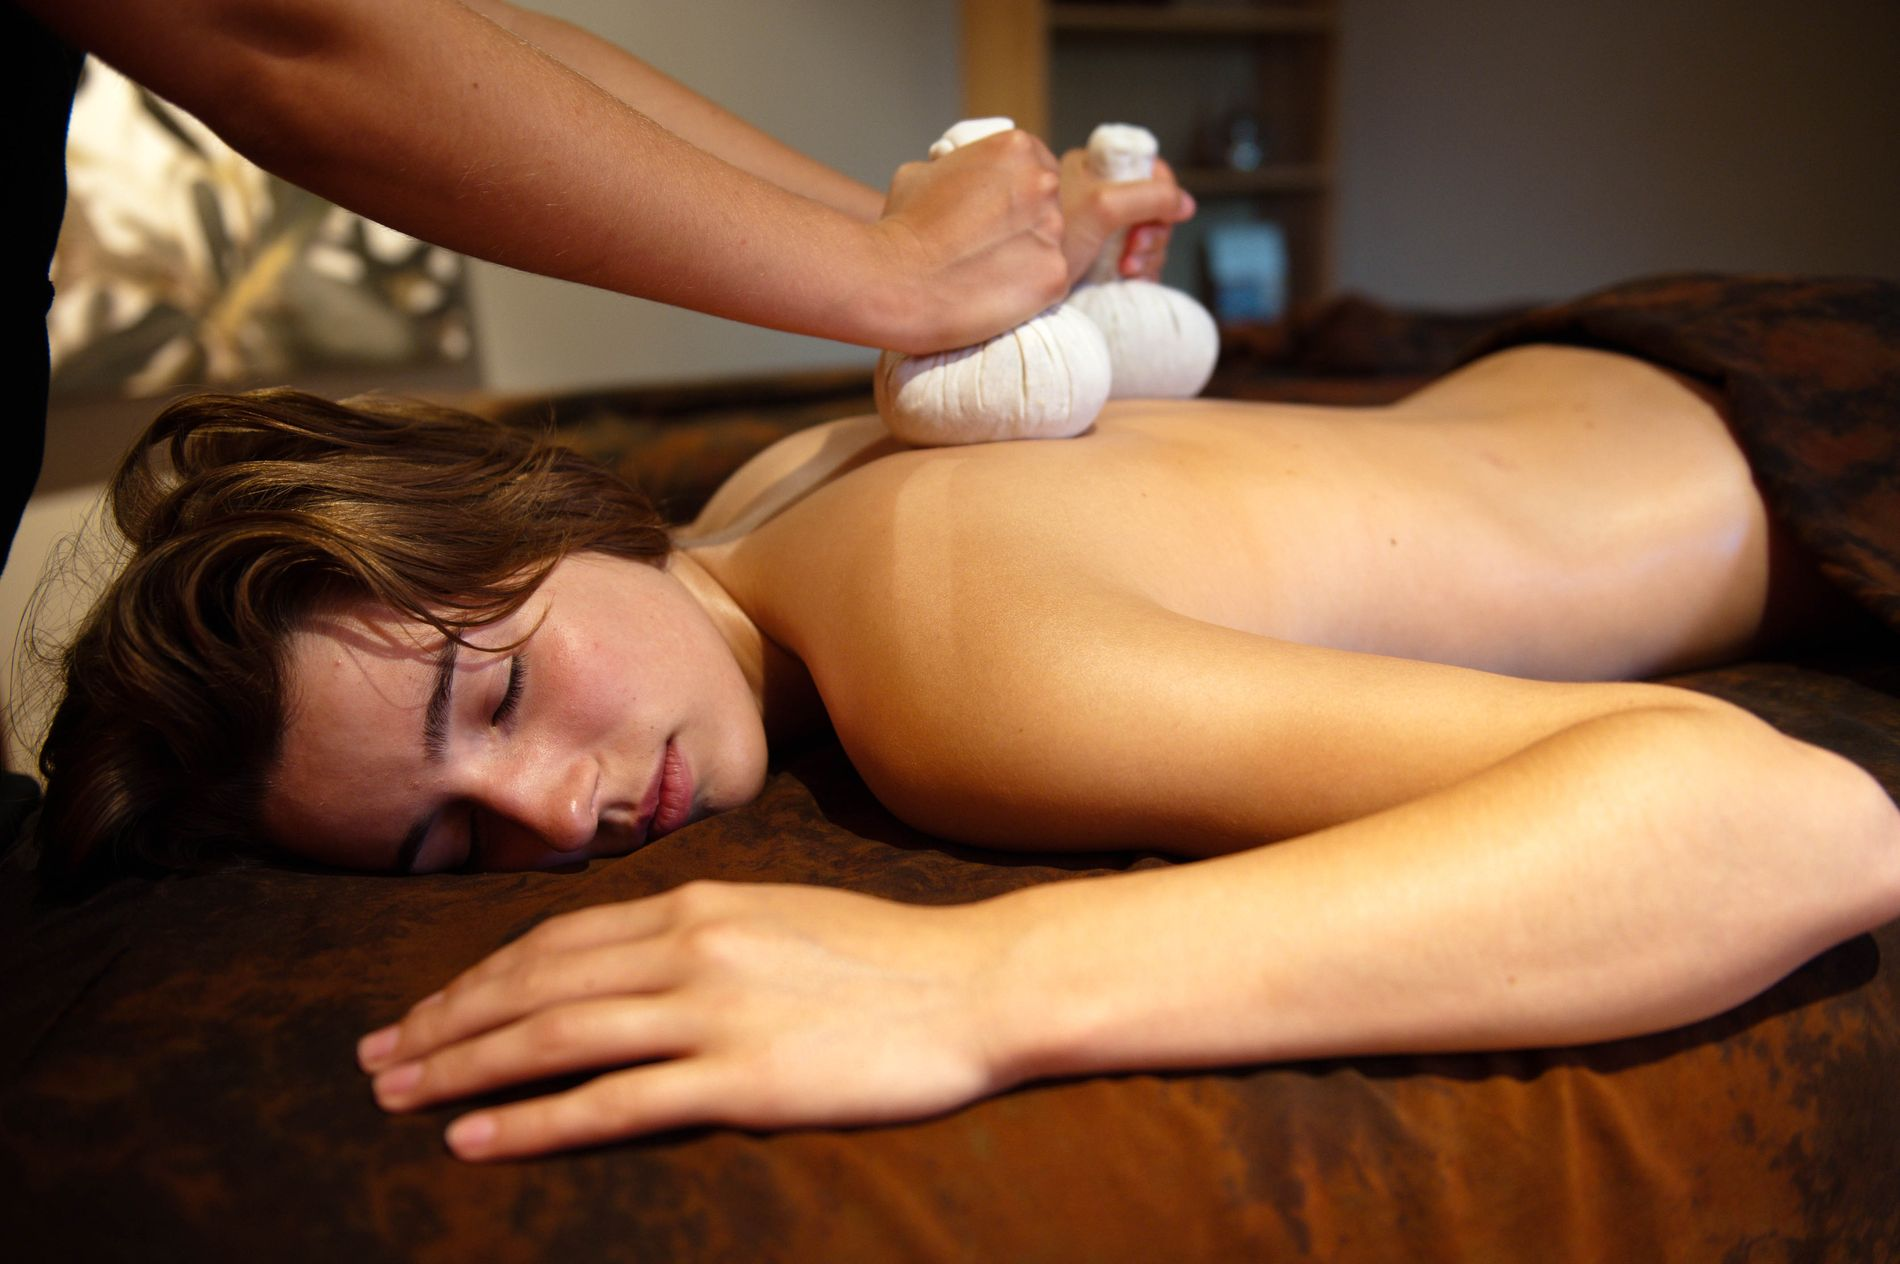 soins massage montpellier salon massage.